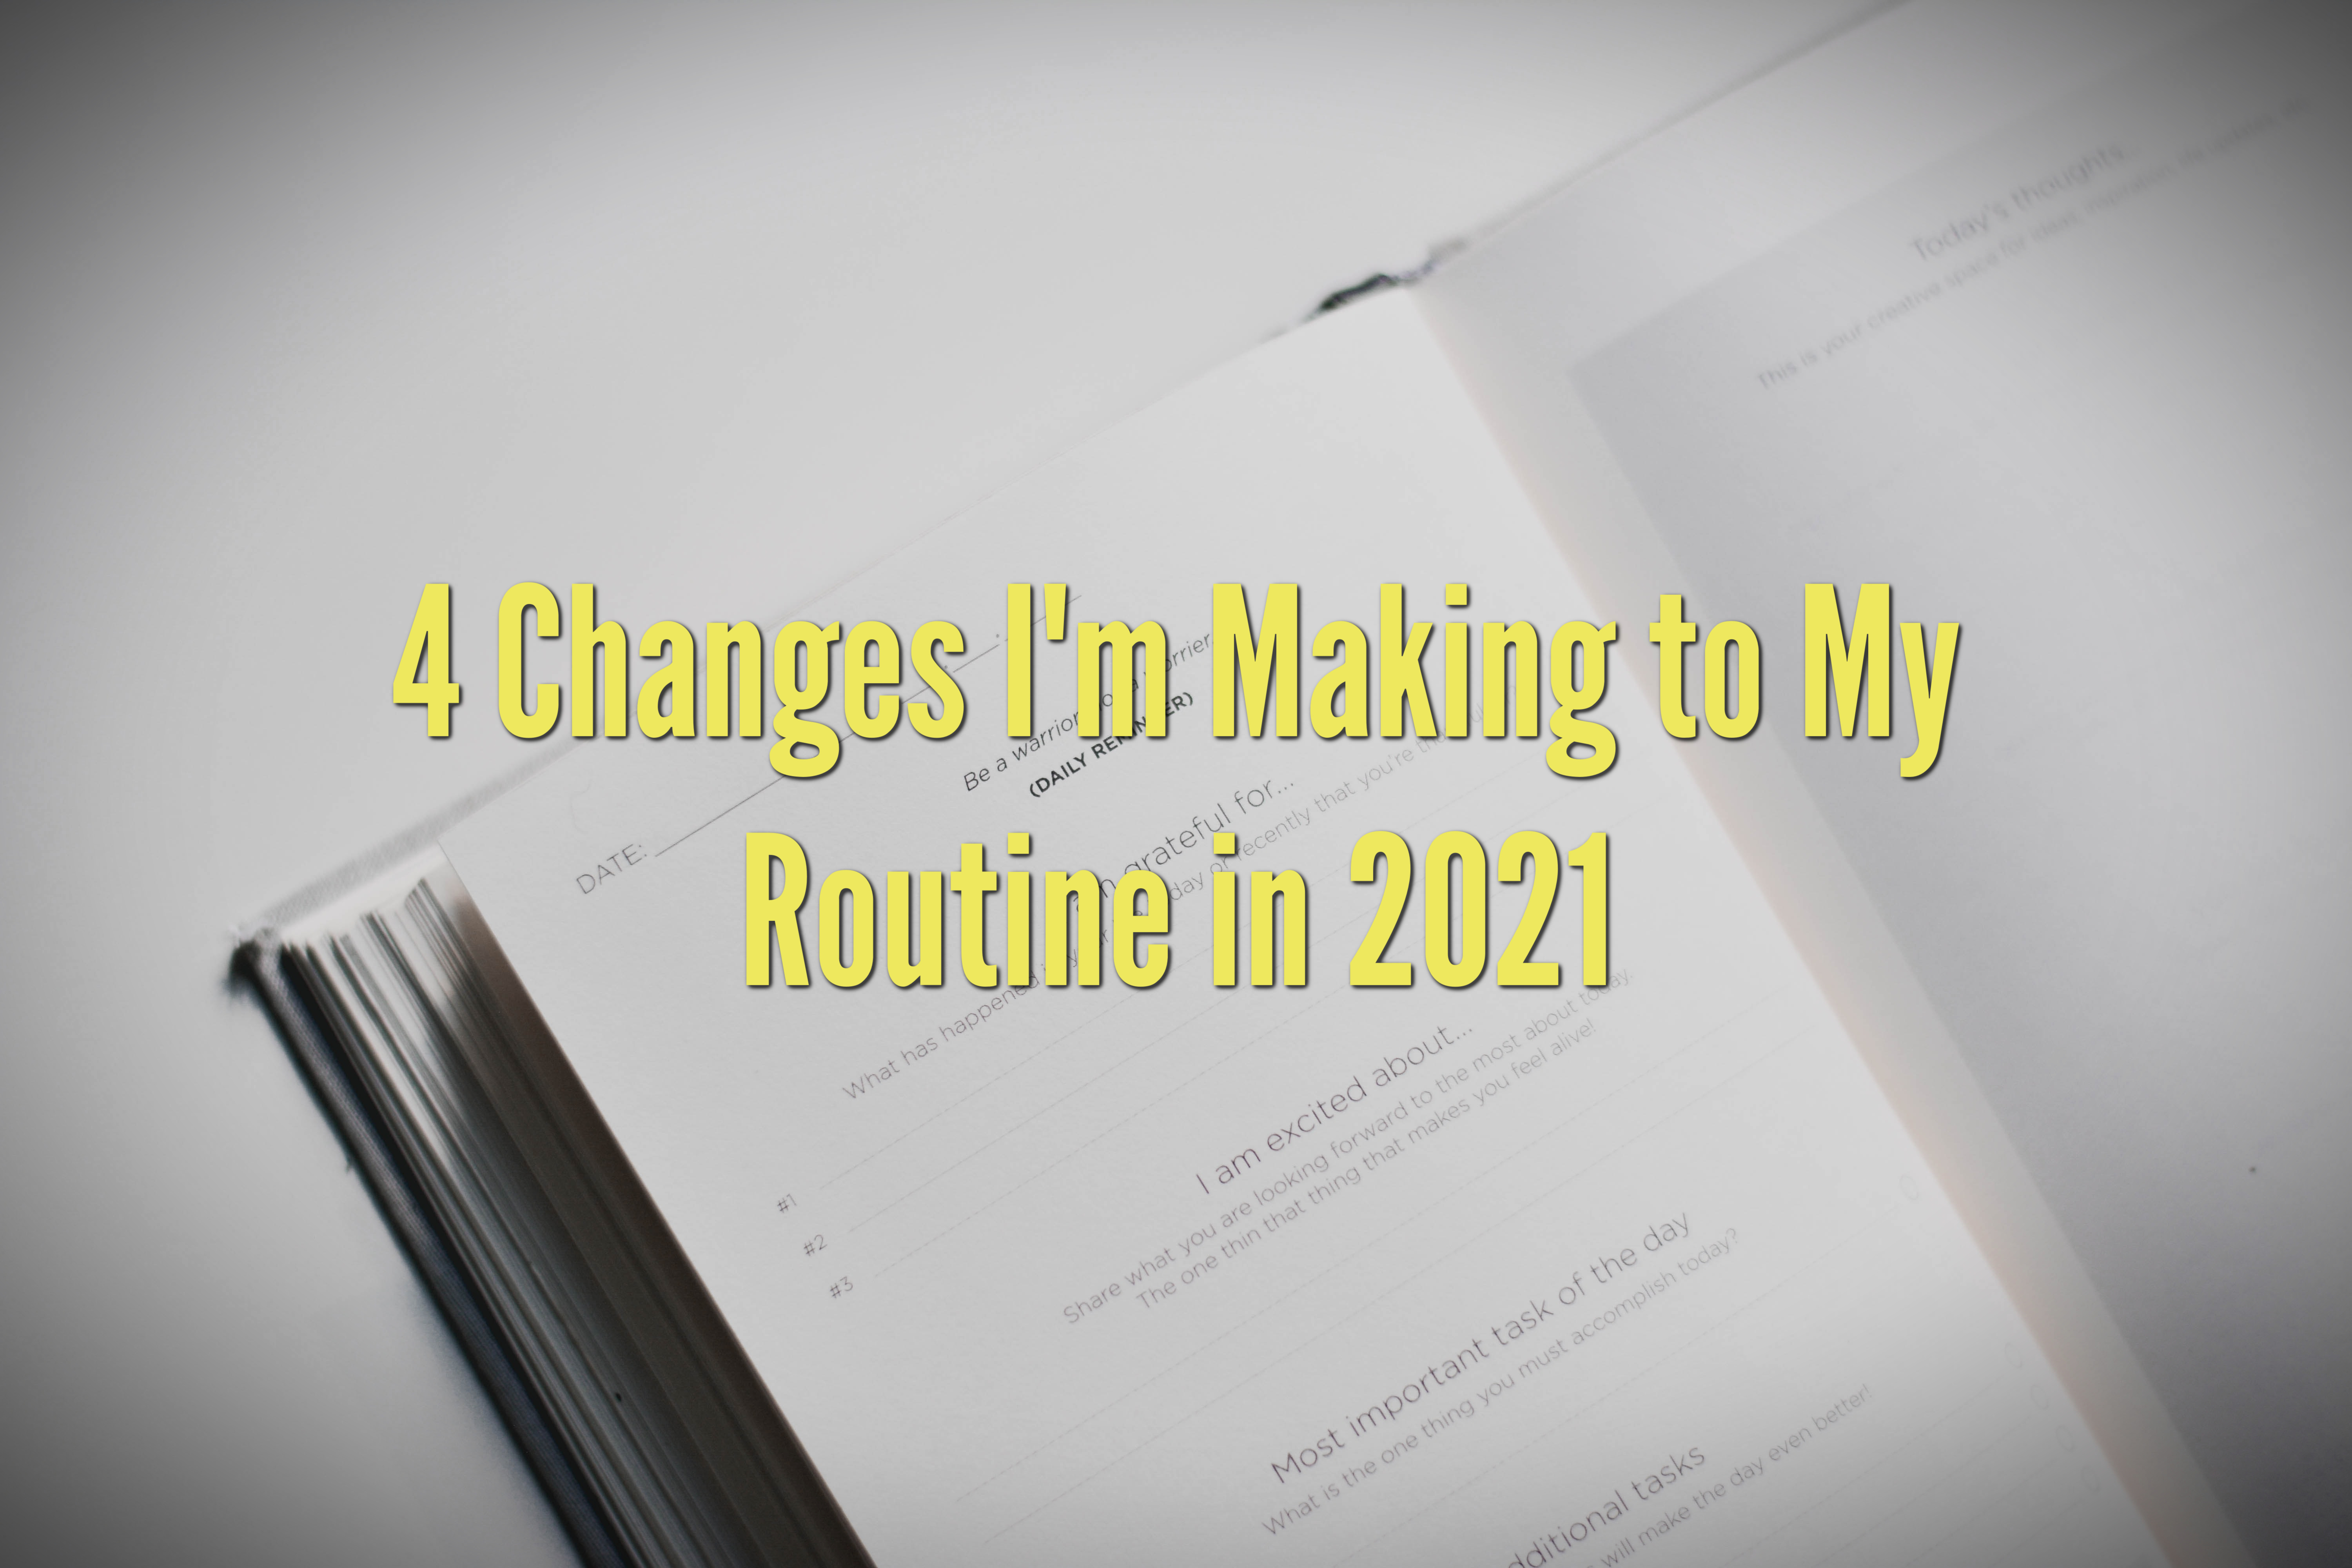 4 Changes I'm Making to My Routine in 2021